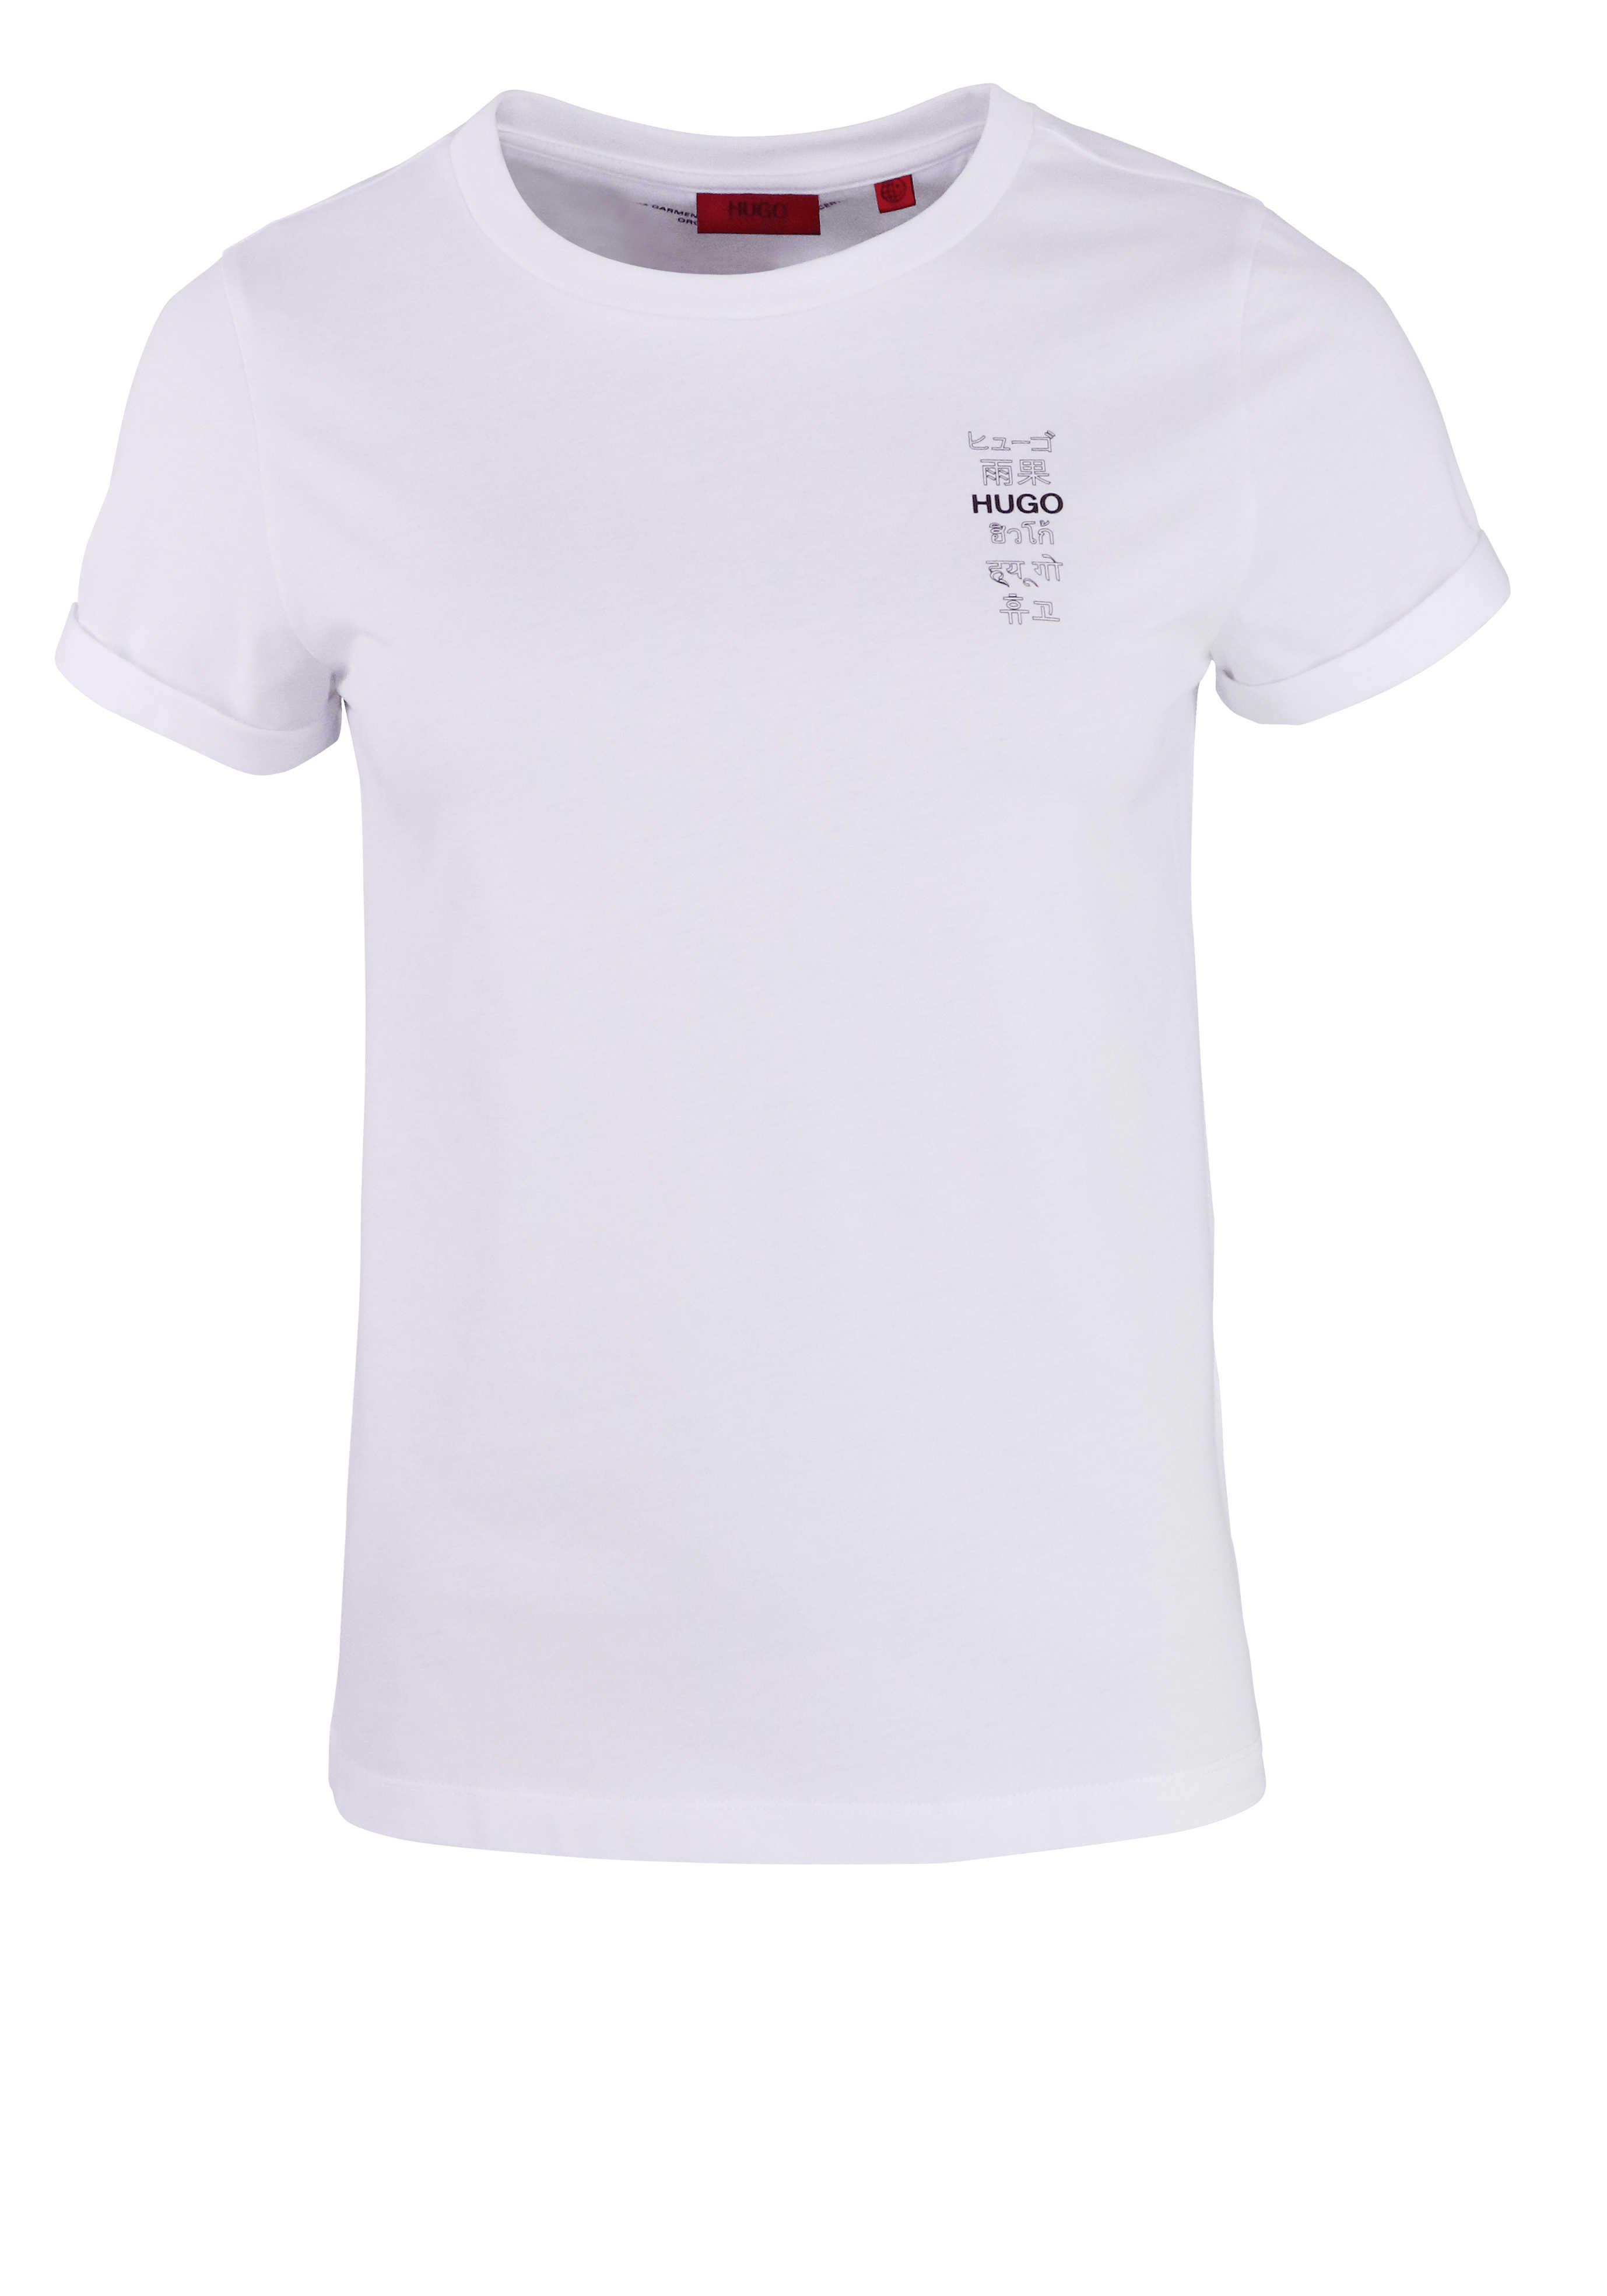 HUGO Kuzram T-Shirt THE SLIM TEE 5 Rundhals Logo Schrift-Print weiß